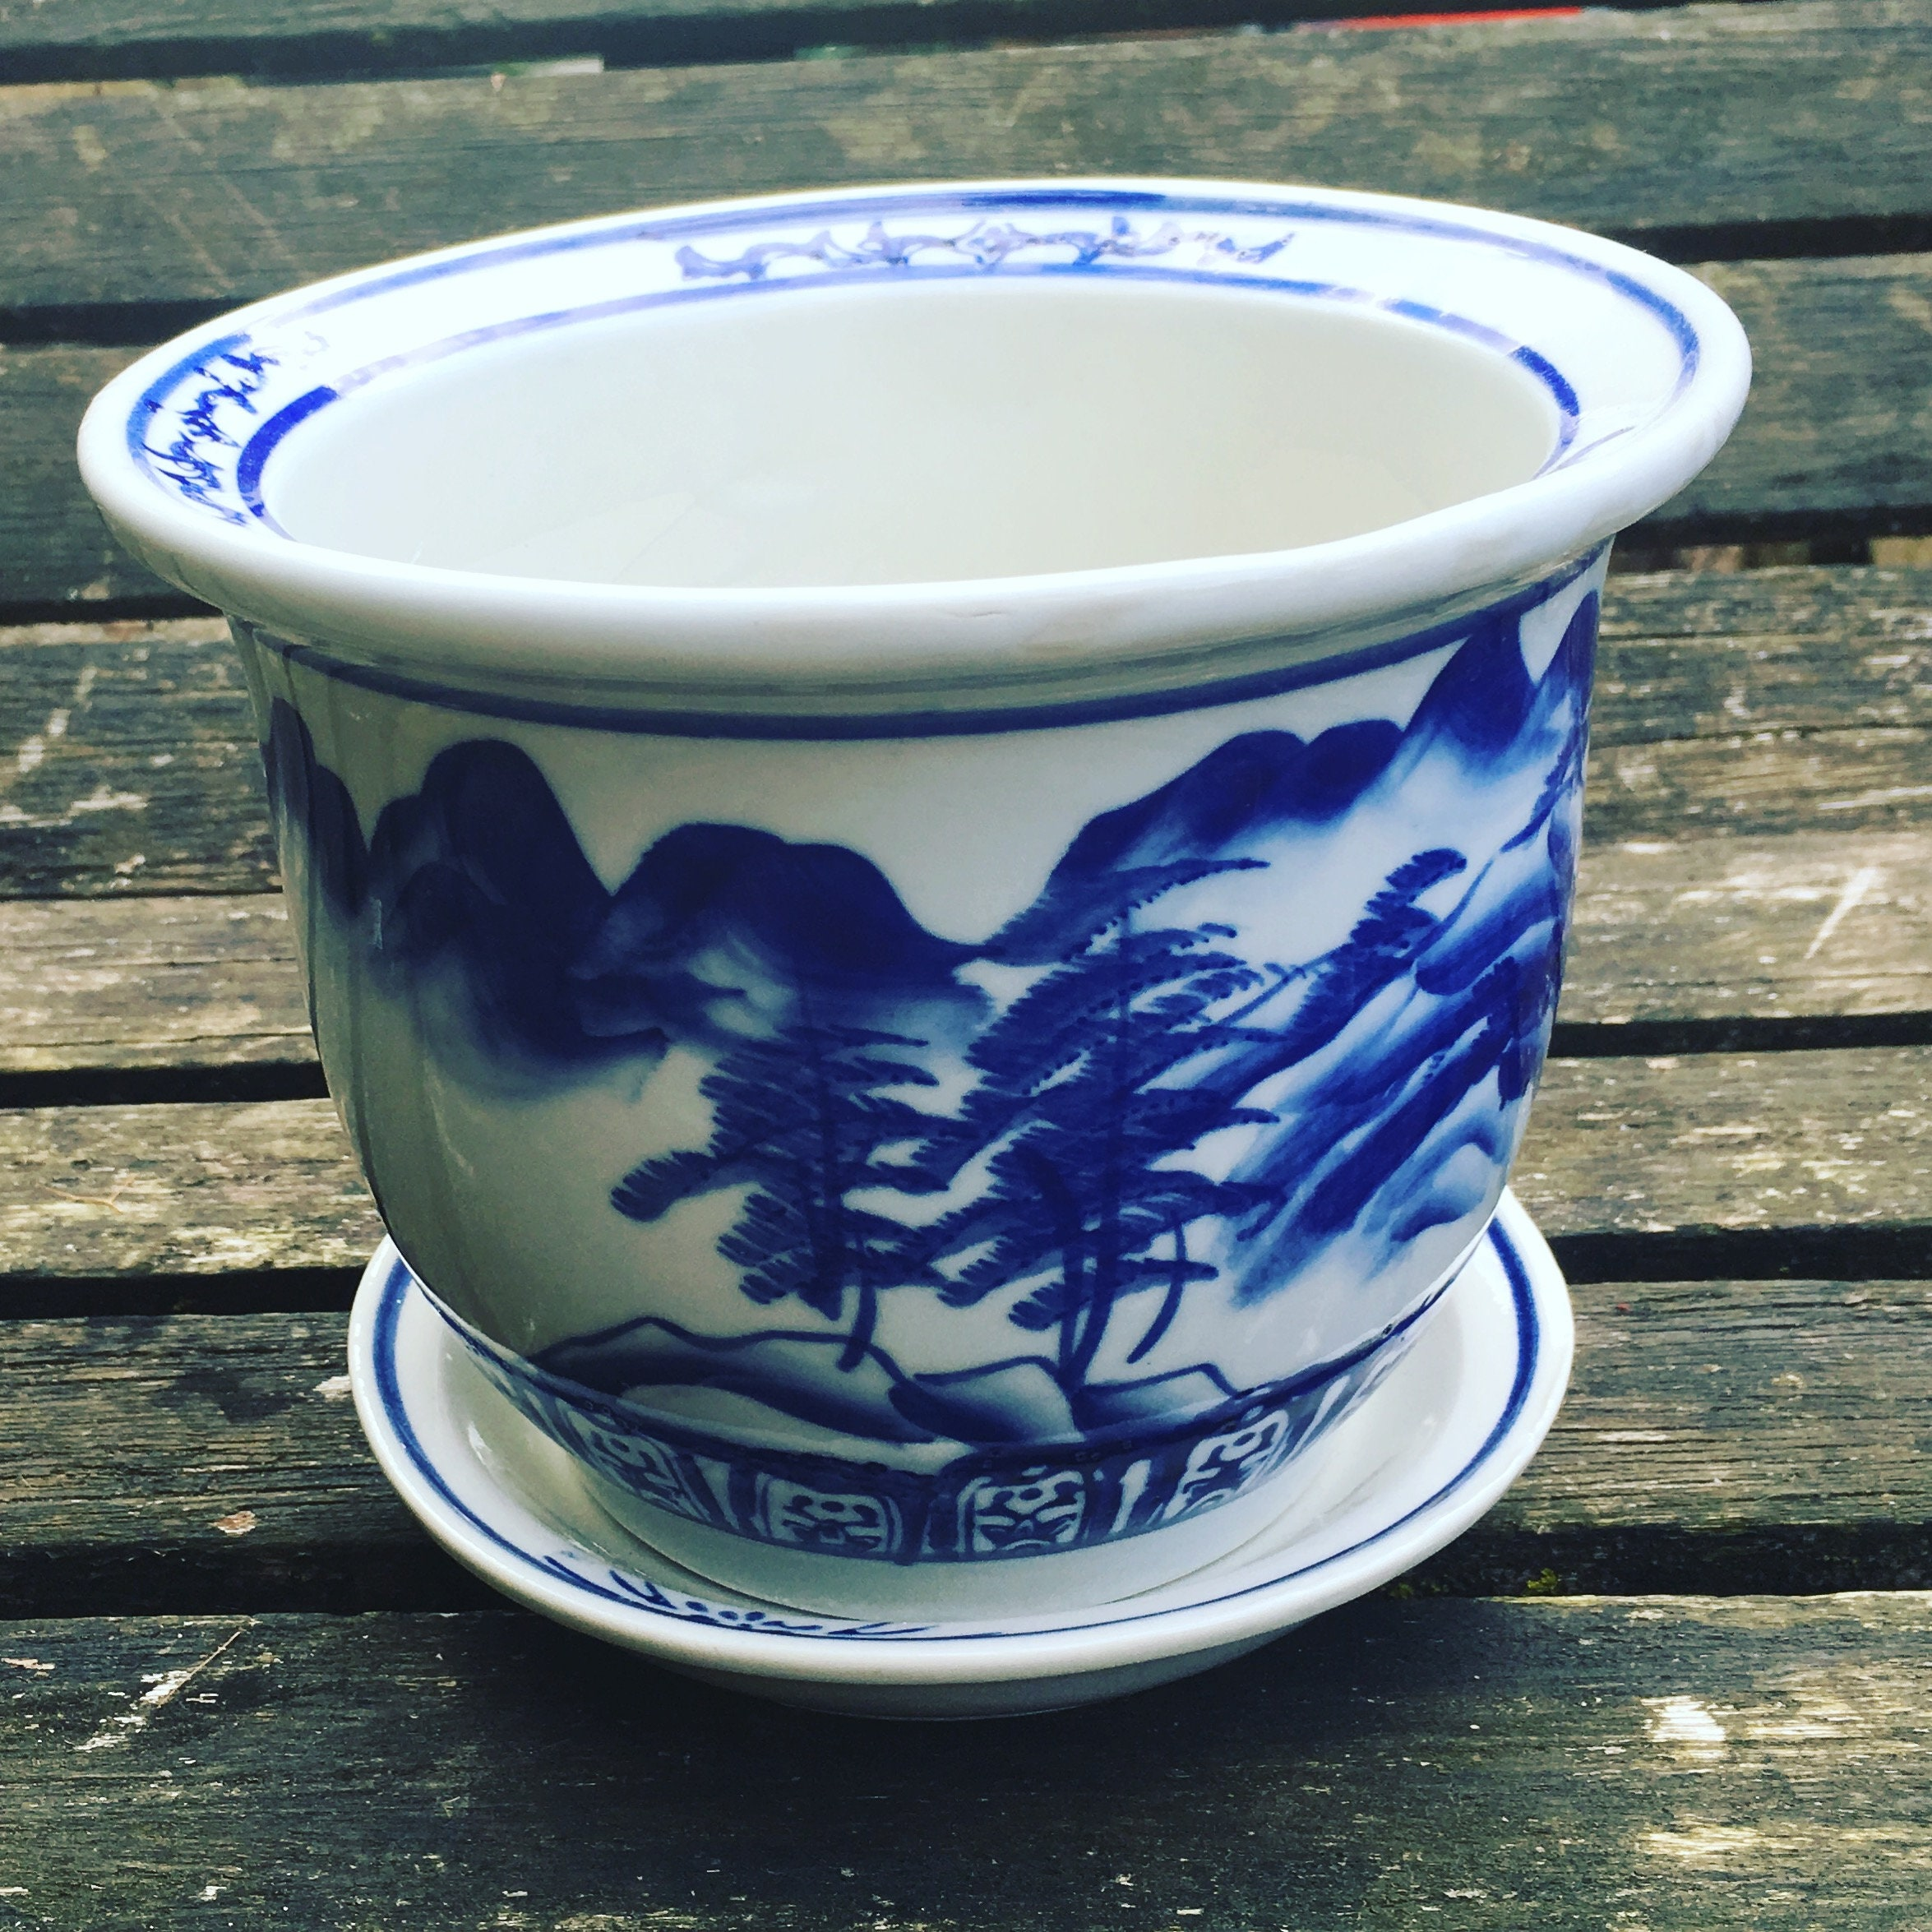 Sold Vintage Blue White Chinoiserie Planter Pot With Base